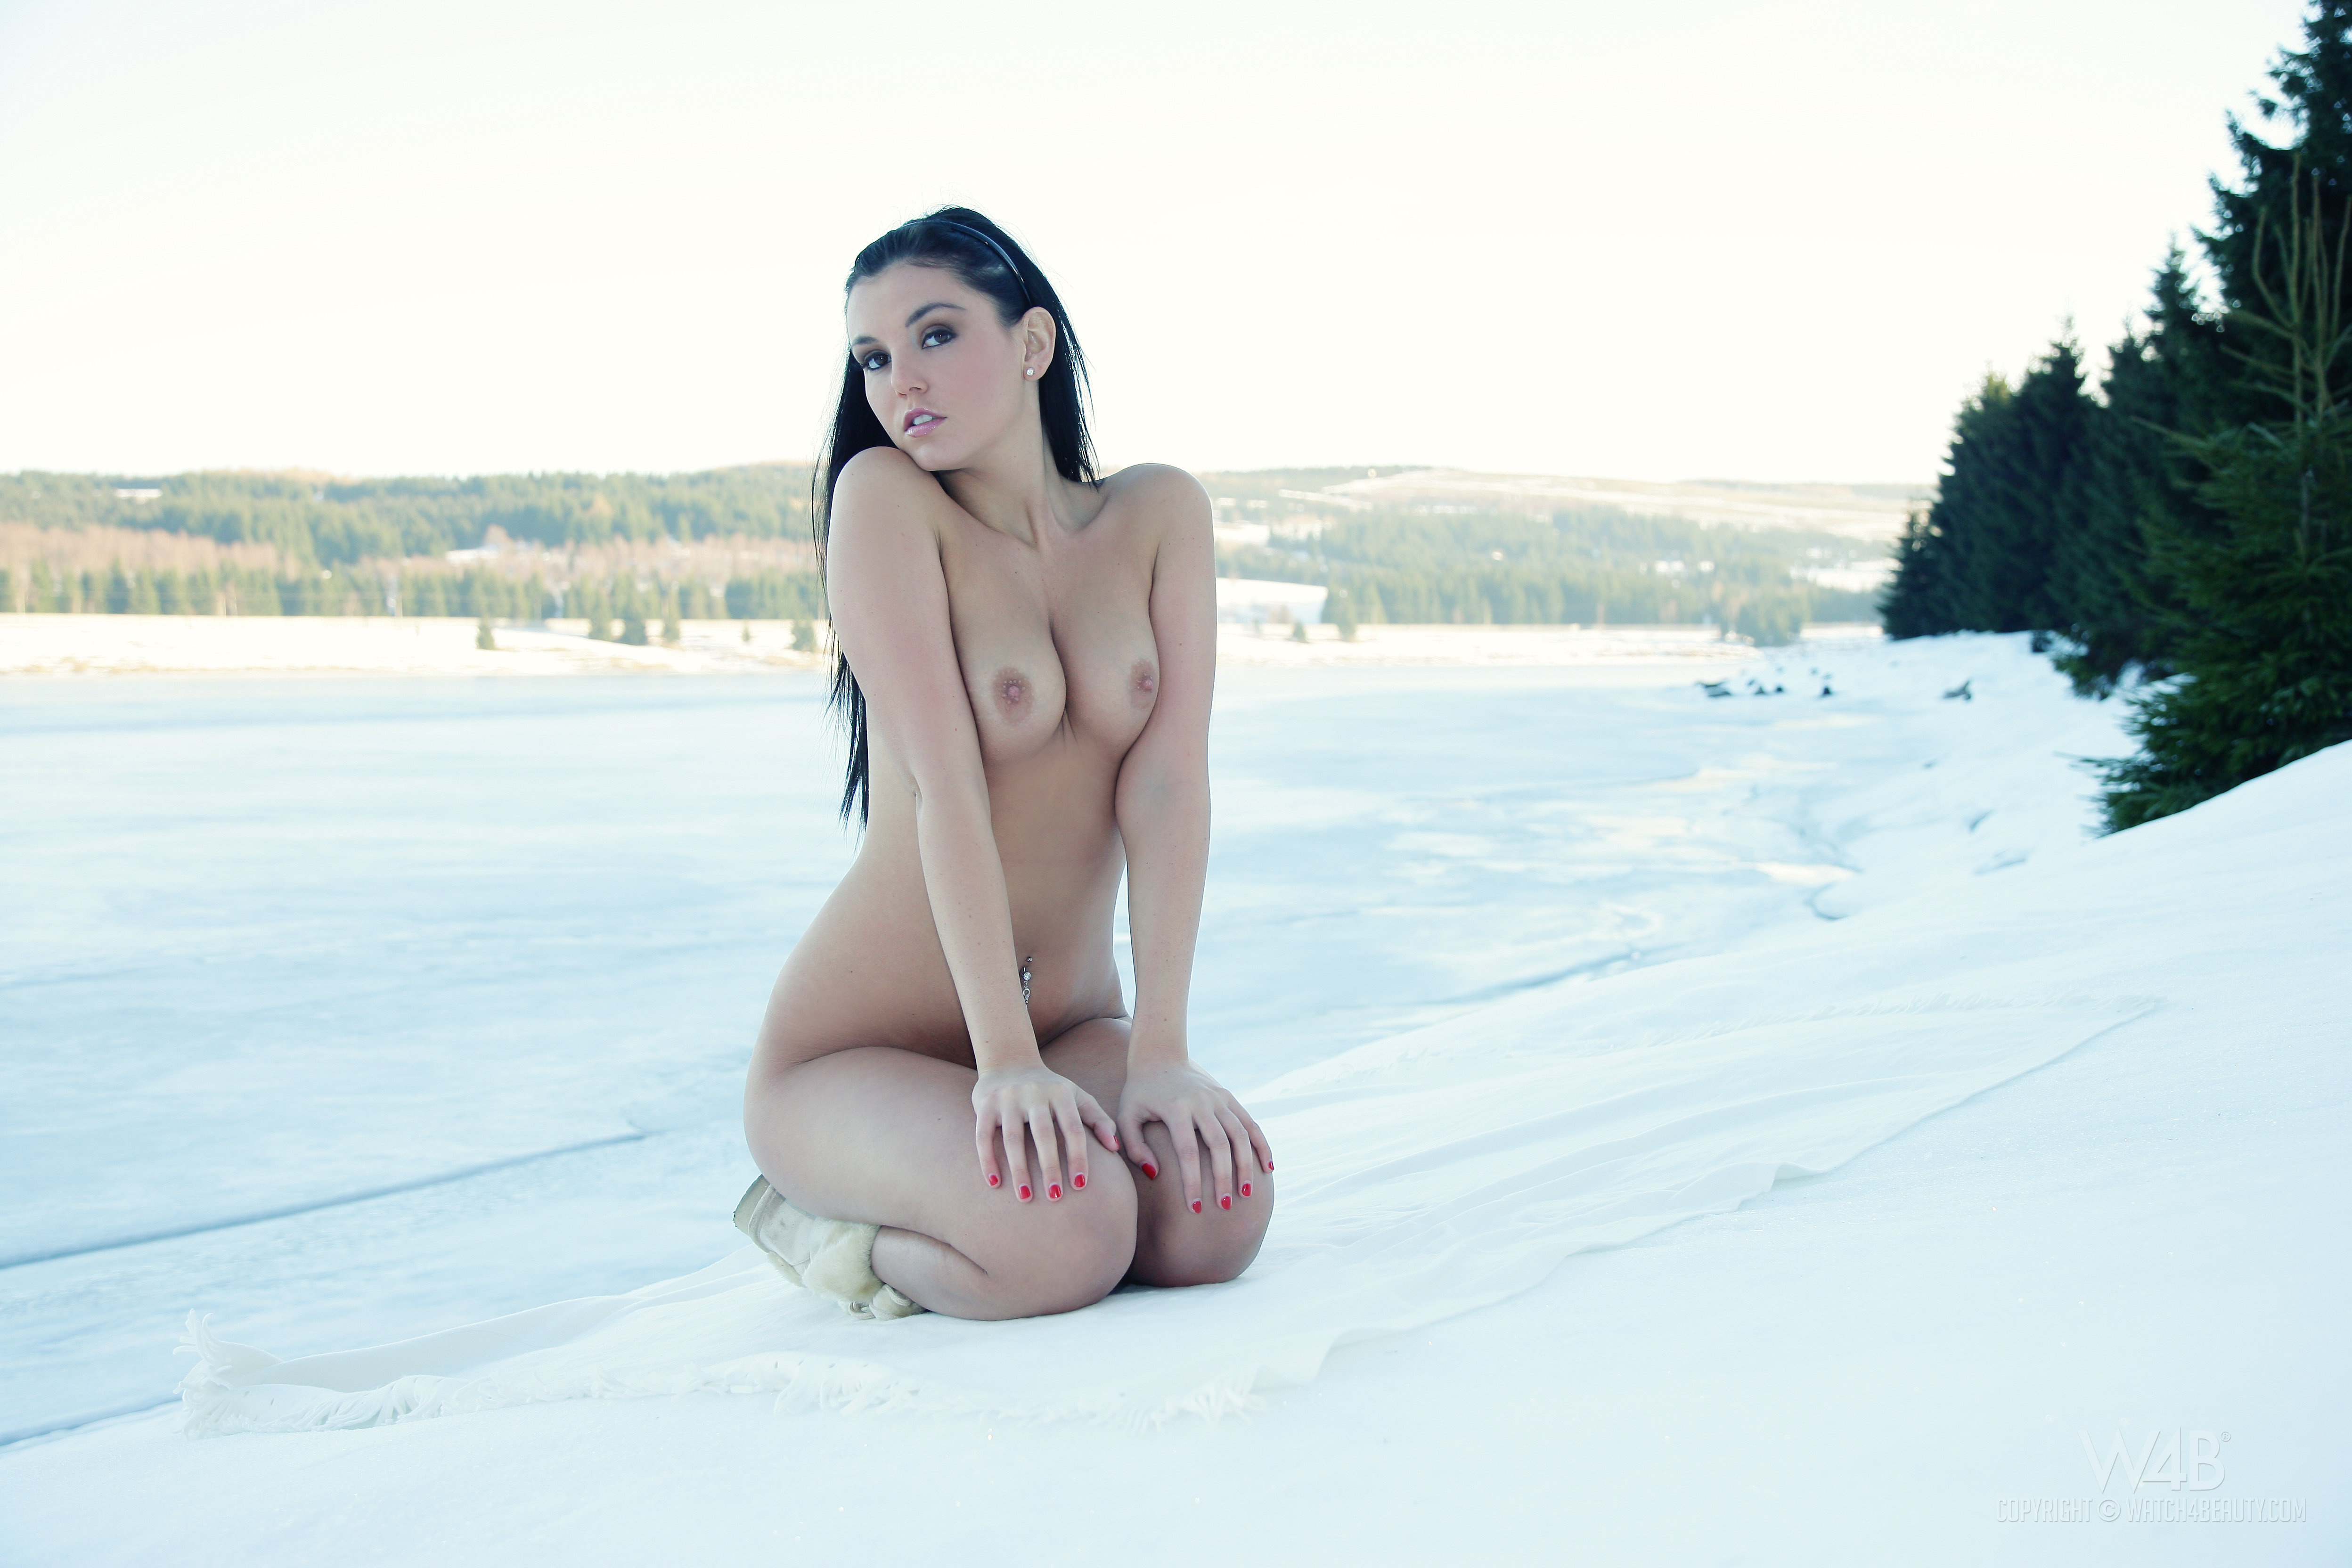 Jeri tits in the snow naked